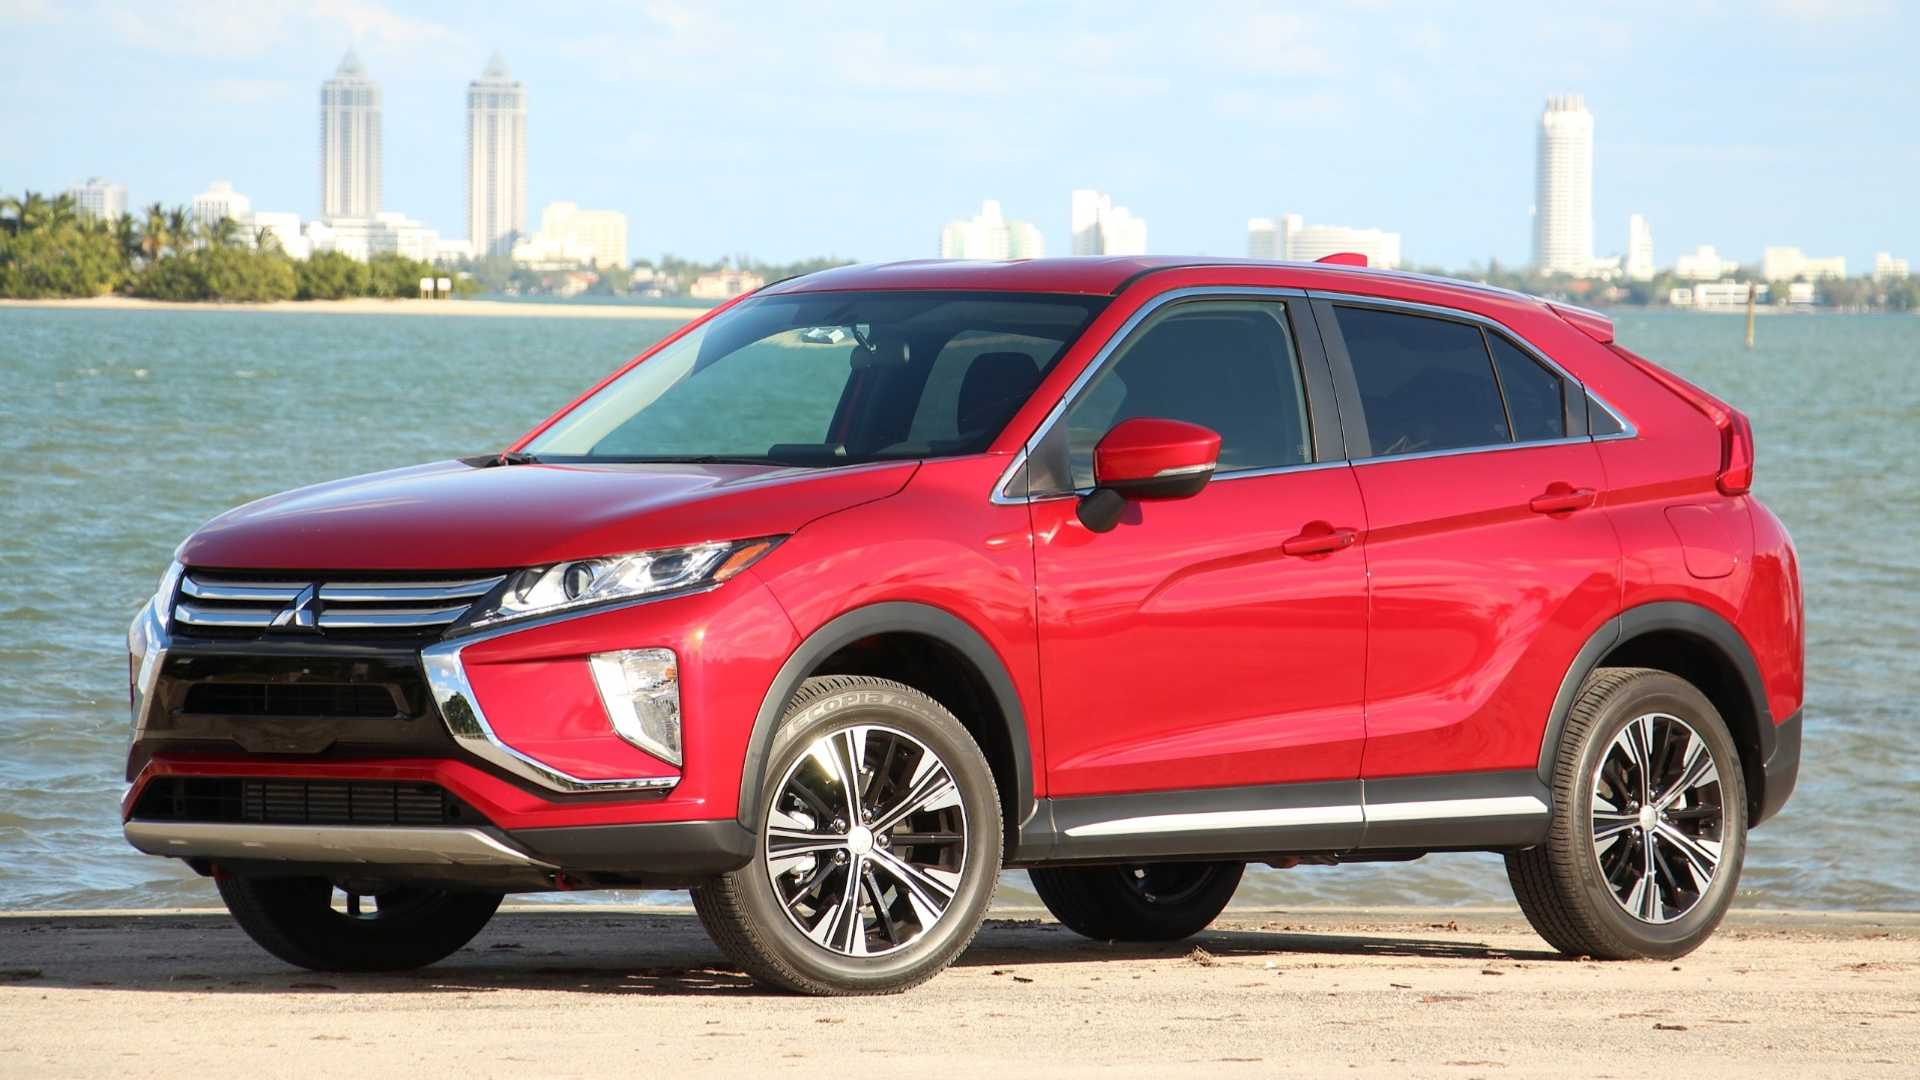 83 New 2019 Mitsubishi Cross Price And Review